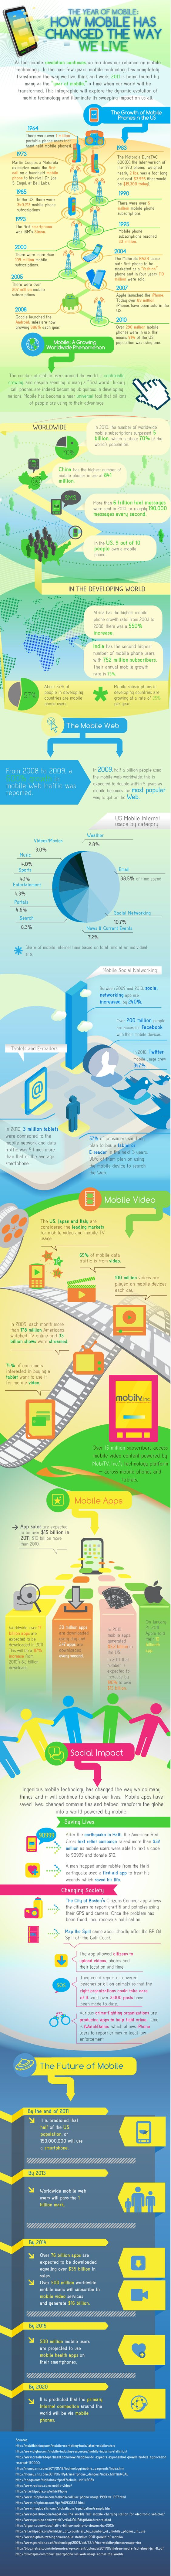 via Anise Smith via Devstand onto Mobile Marketing  The Year of Mobile: How Mobile Has Changed the Way We Live [Infographic]